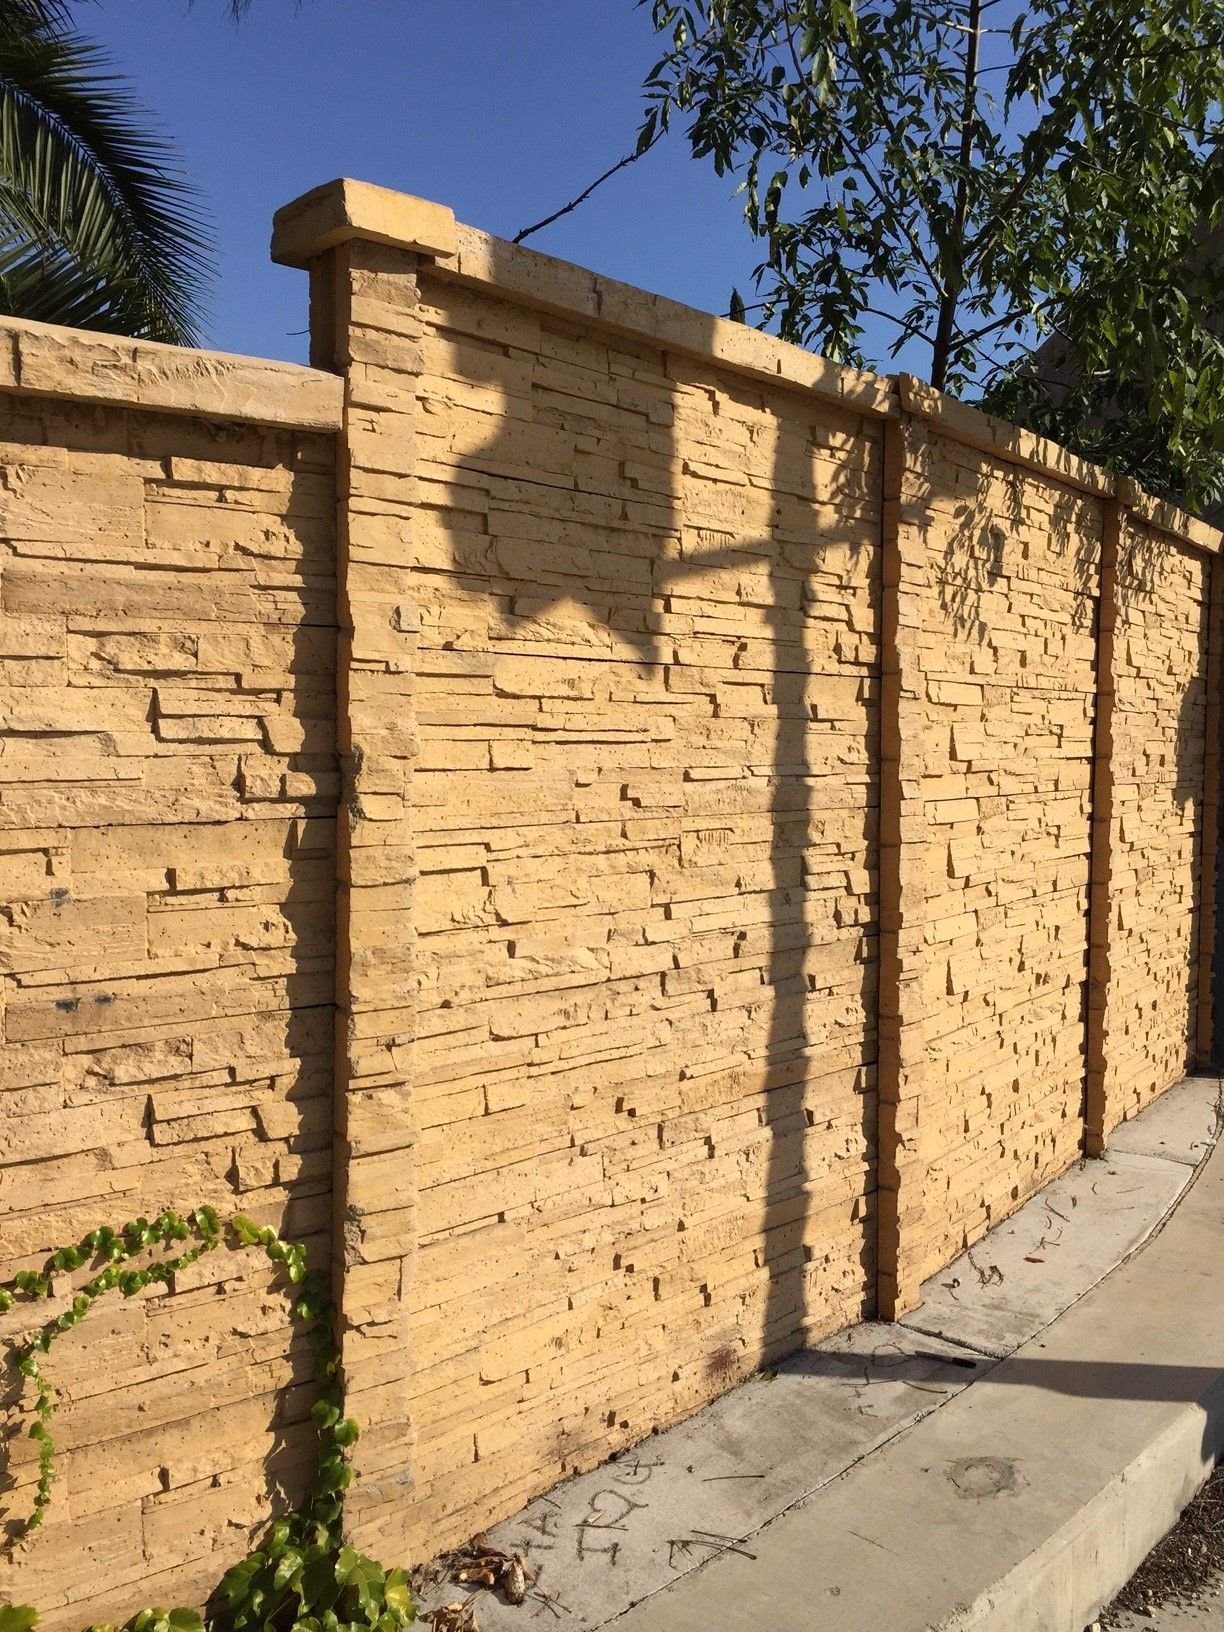 If you want to see another ChiselCrete precast concrete fence ...